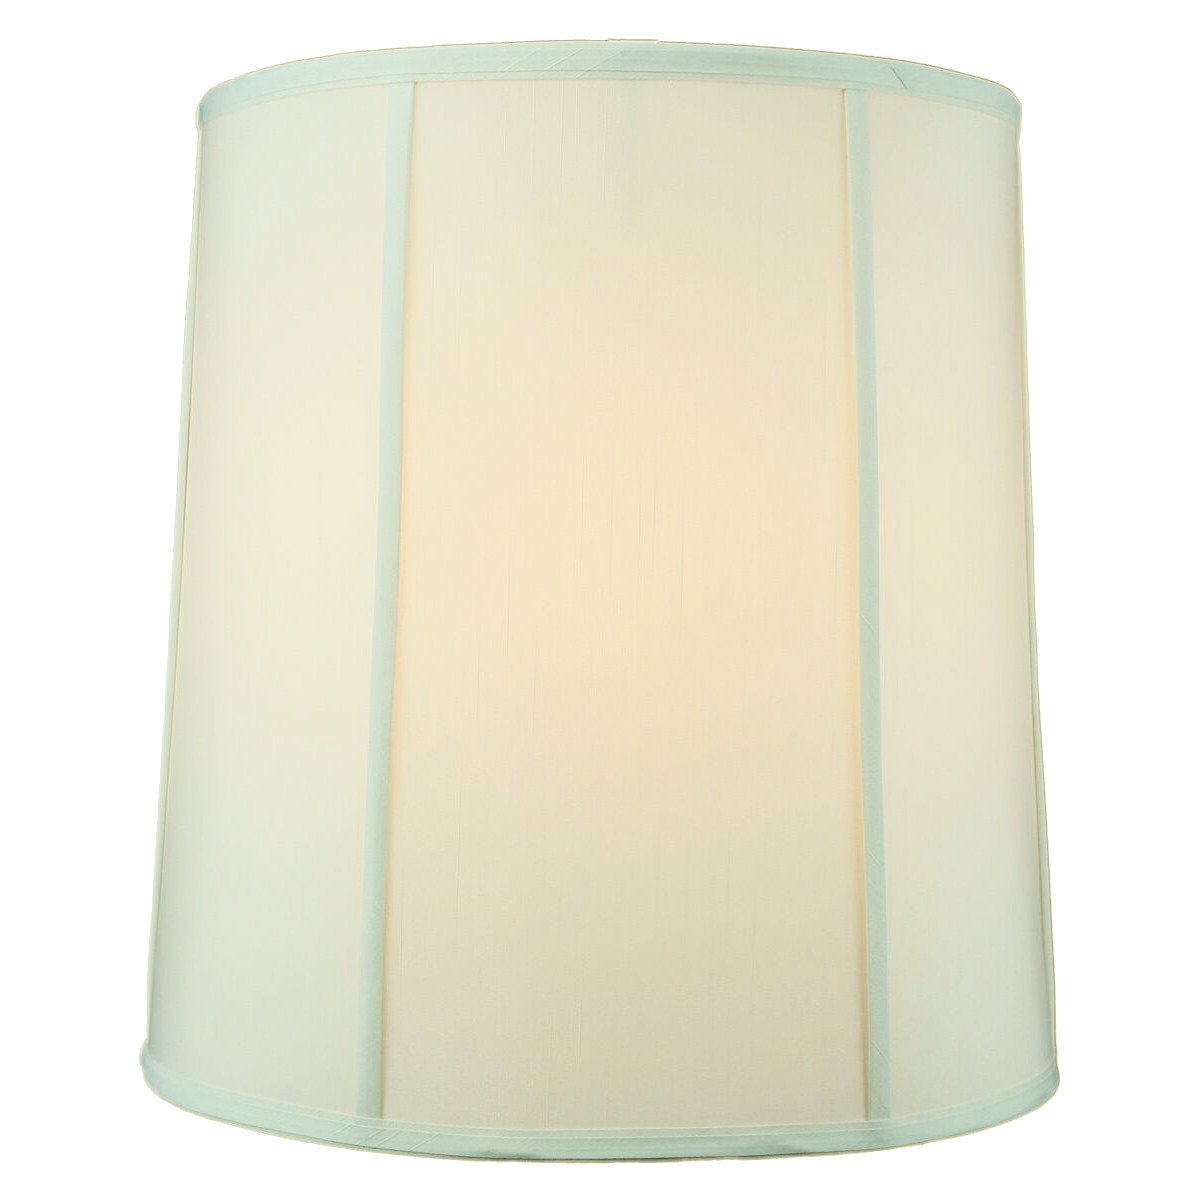 HomeConcept 141617DRES Egg Shell Shantung Drum Lampshade with Brass Spider Fitter by Home Concept, 14'' x 16'' x 17'' by HomeConcept (Image #2)